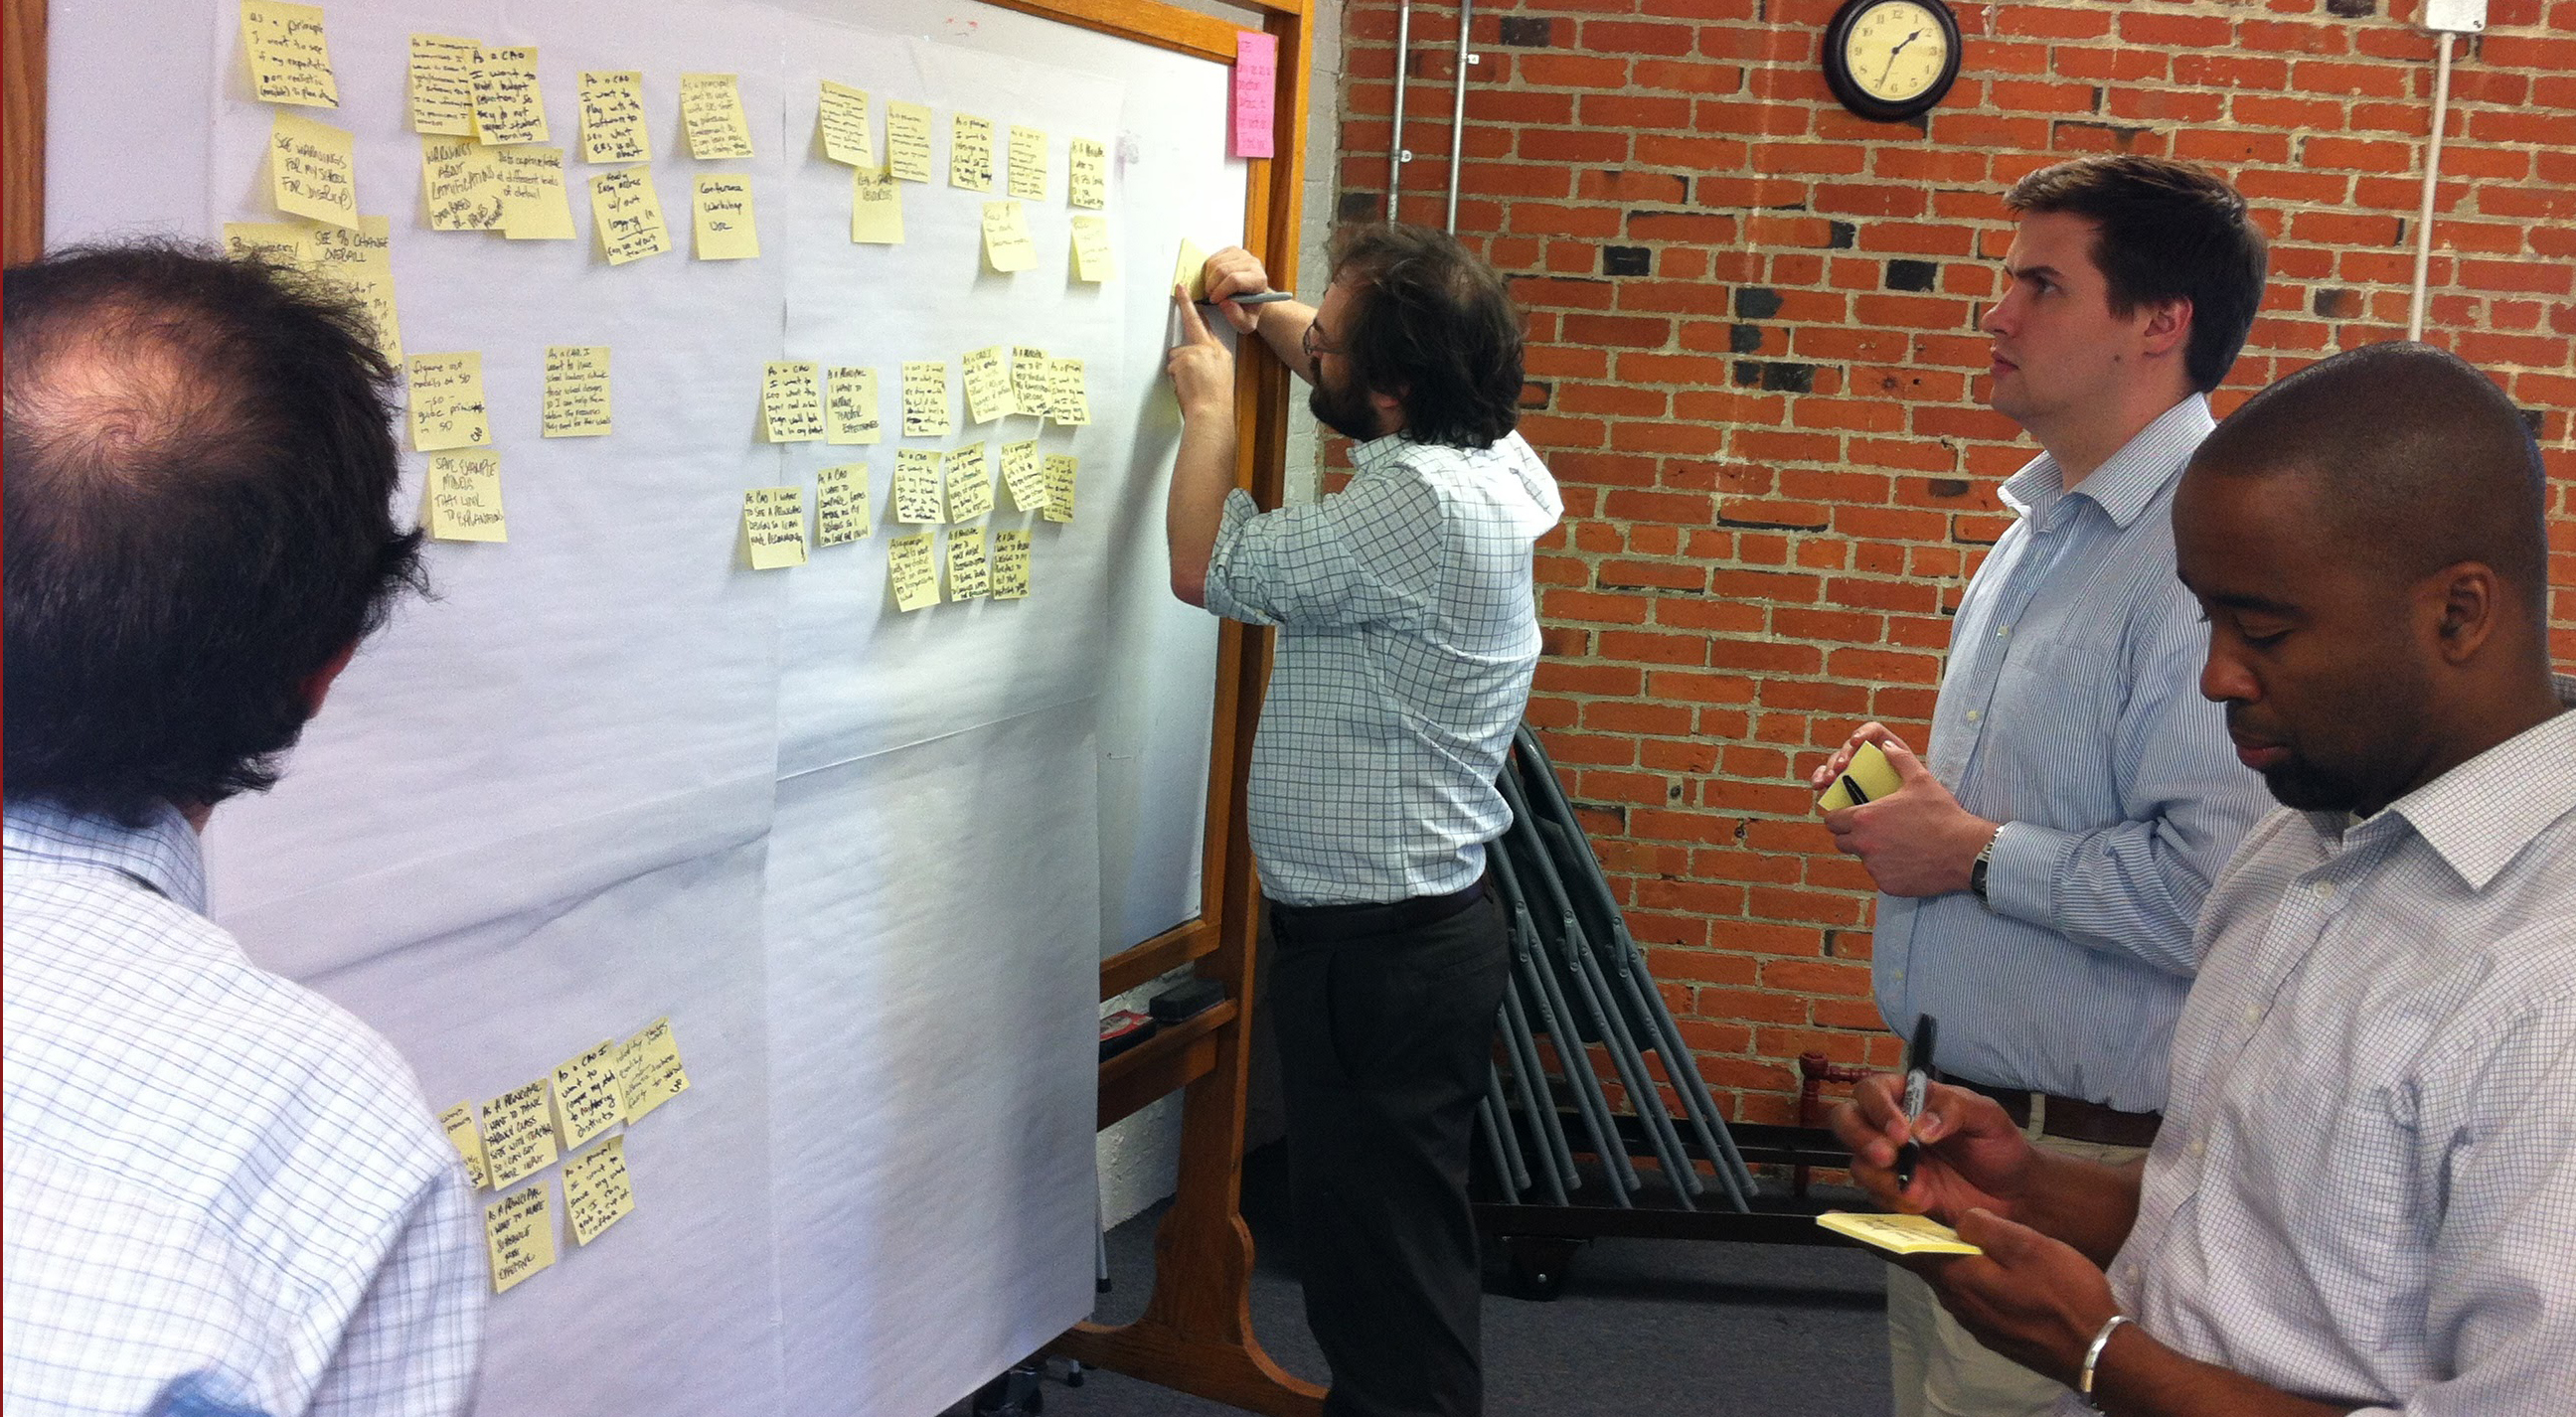 Green River engineers and clients doing a post-it design exercise on a big whiteboard